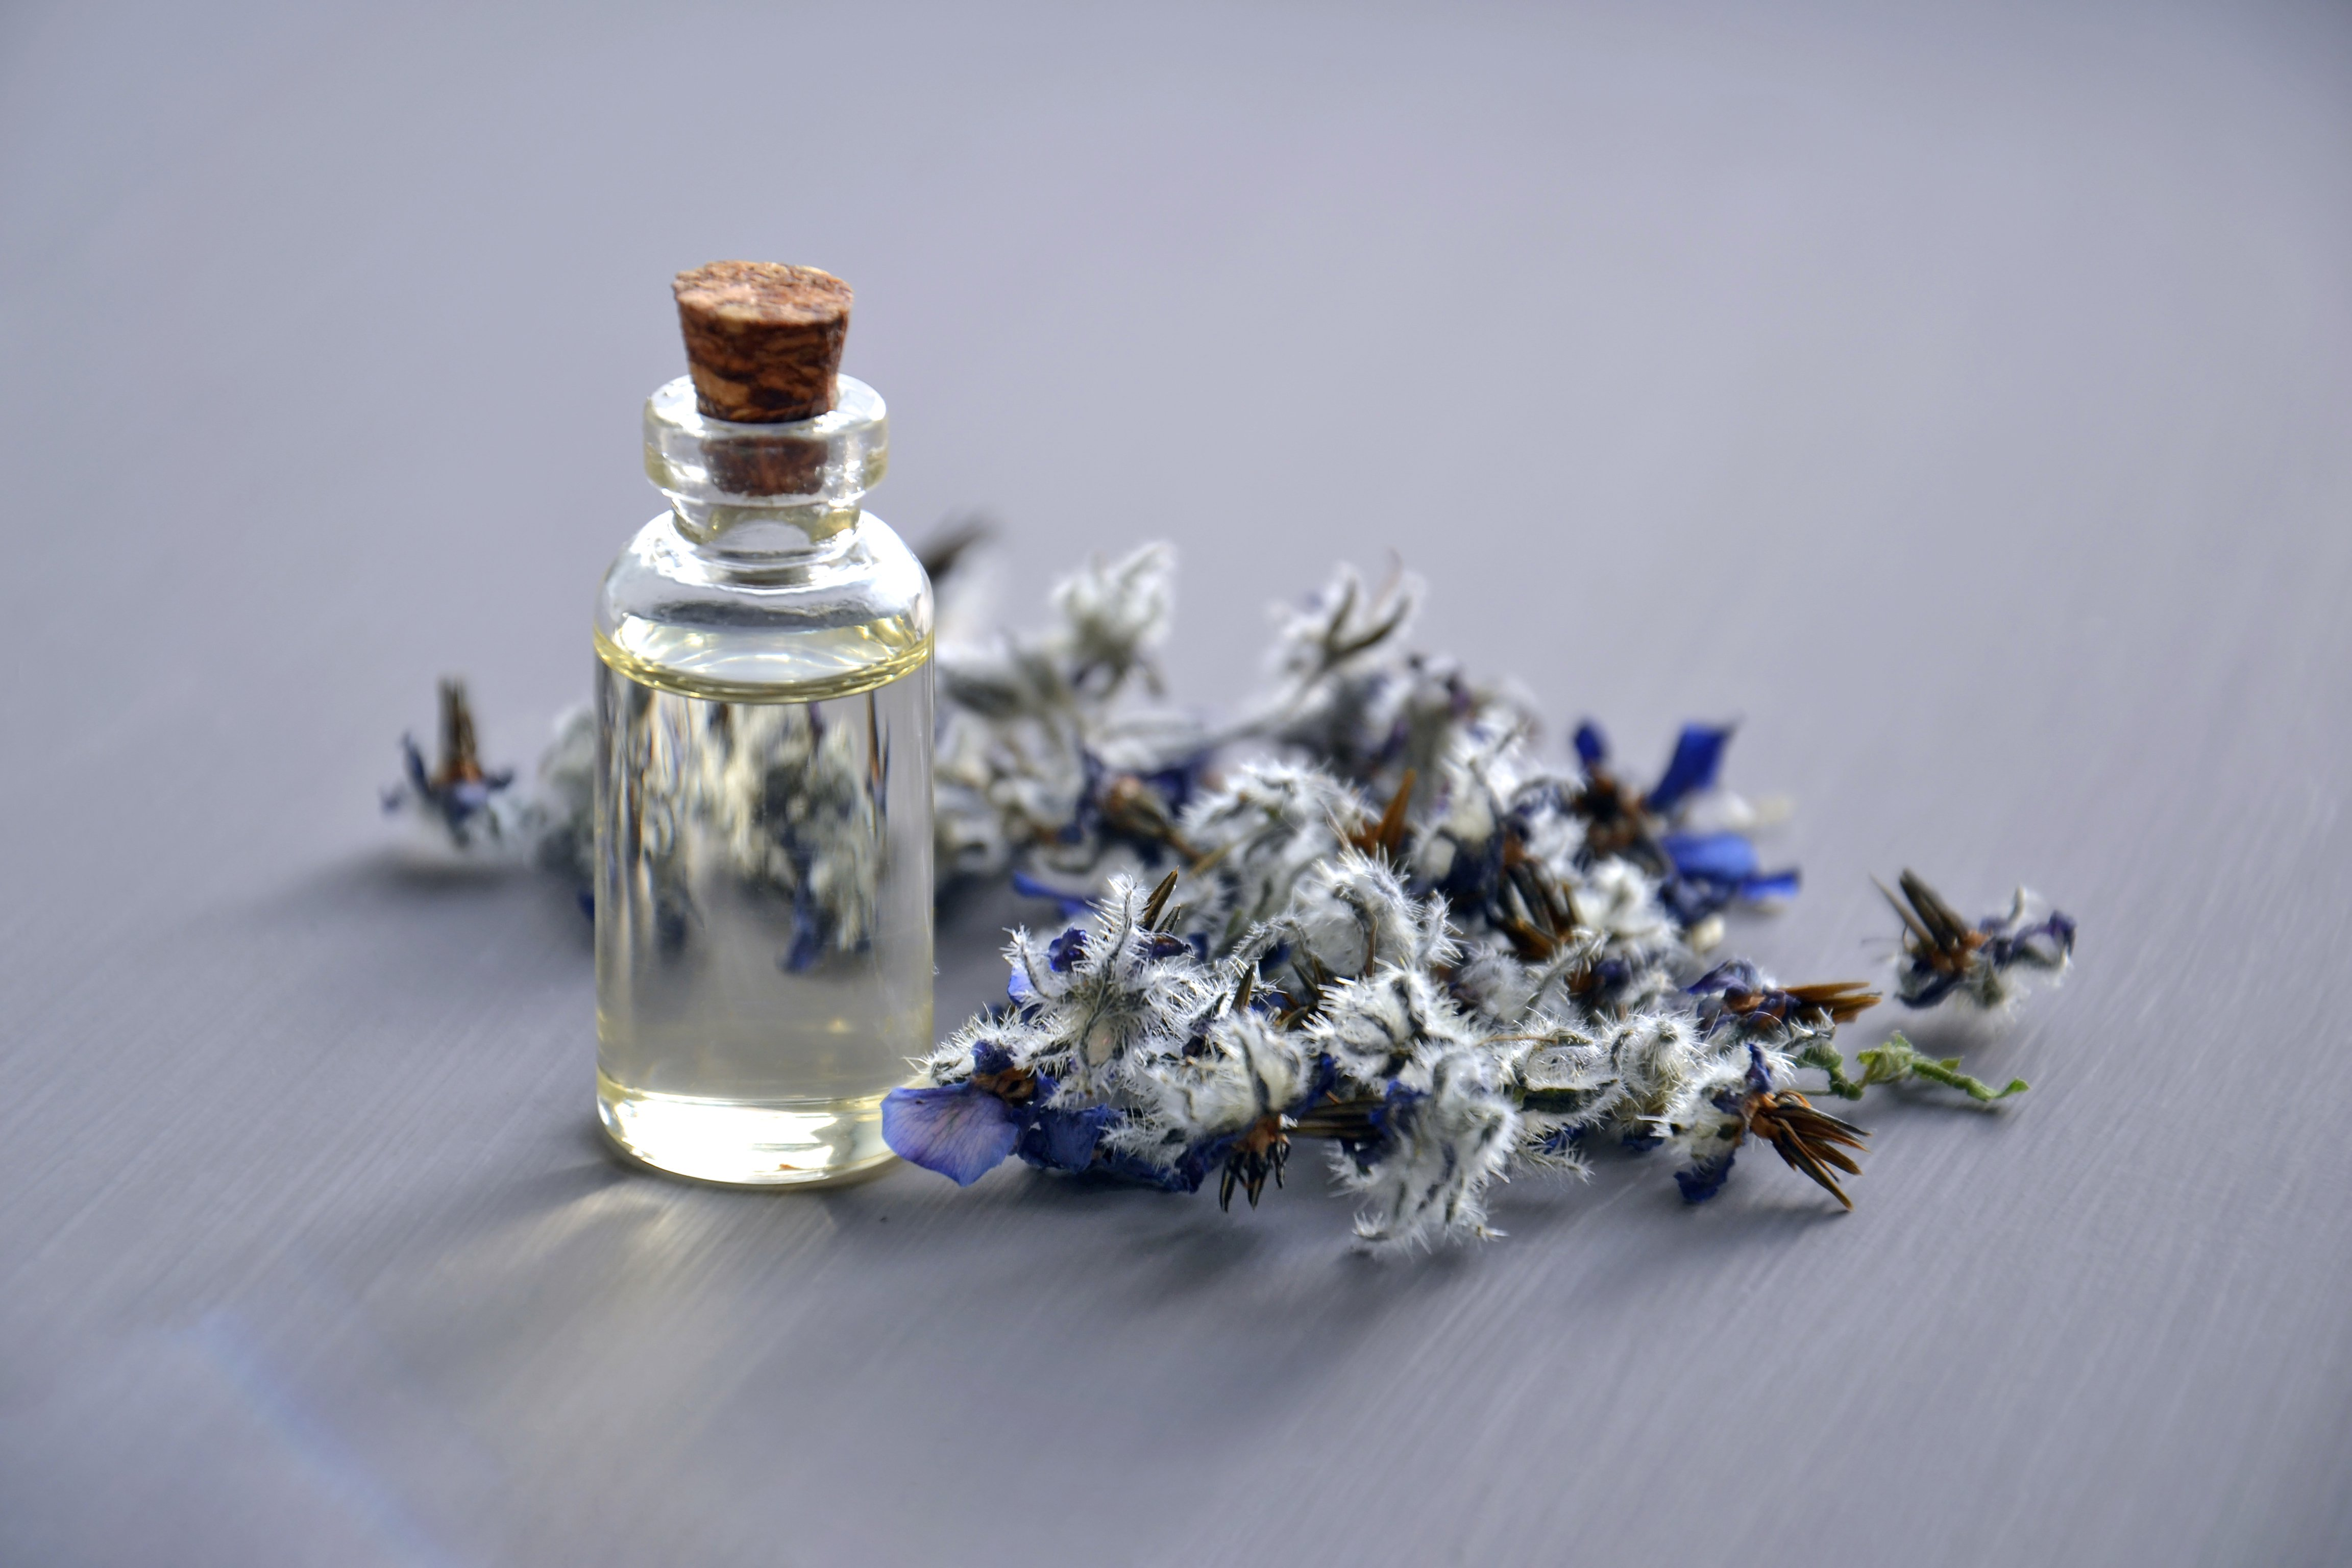 photo of bottle with cork lid and lavender sprigs